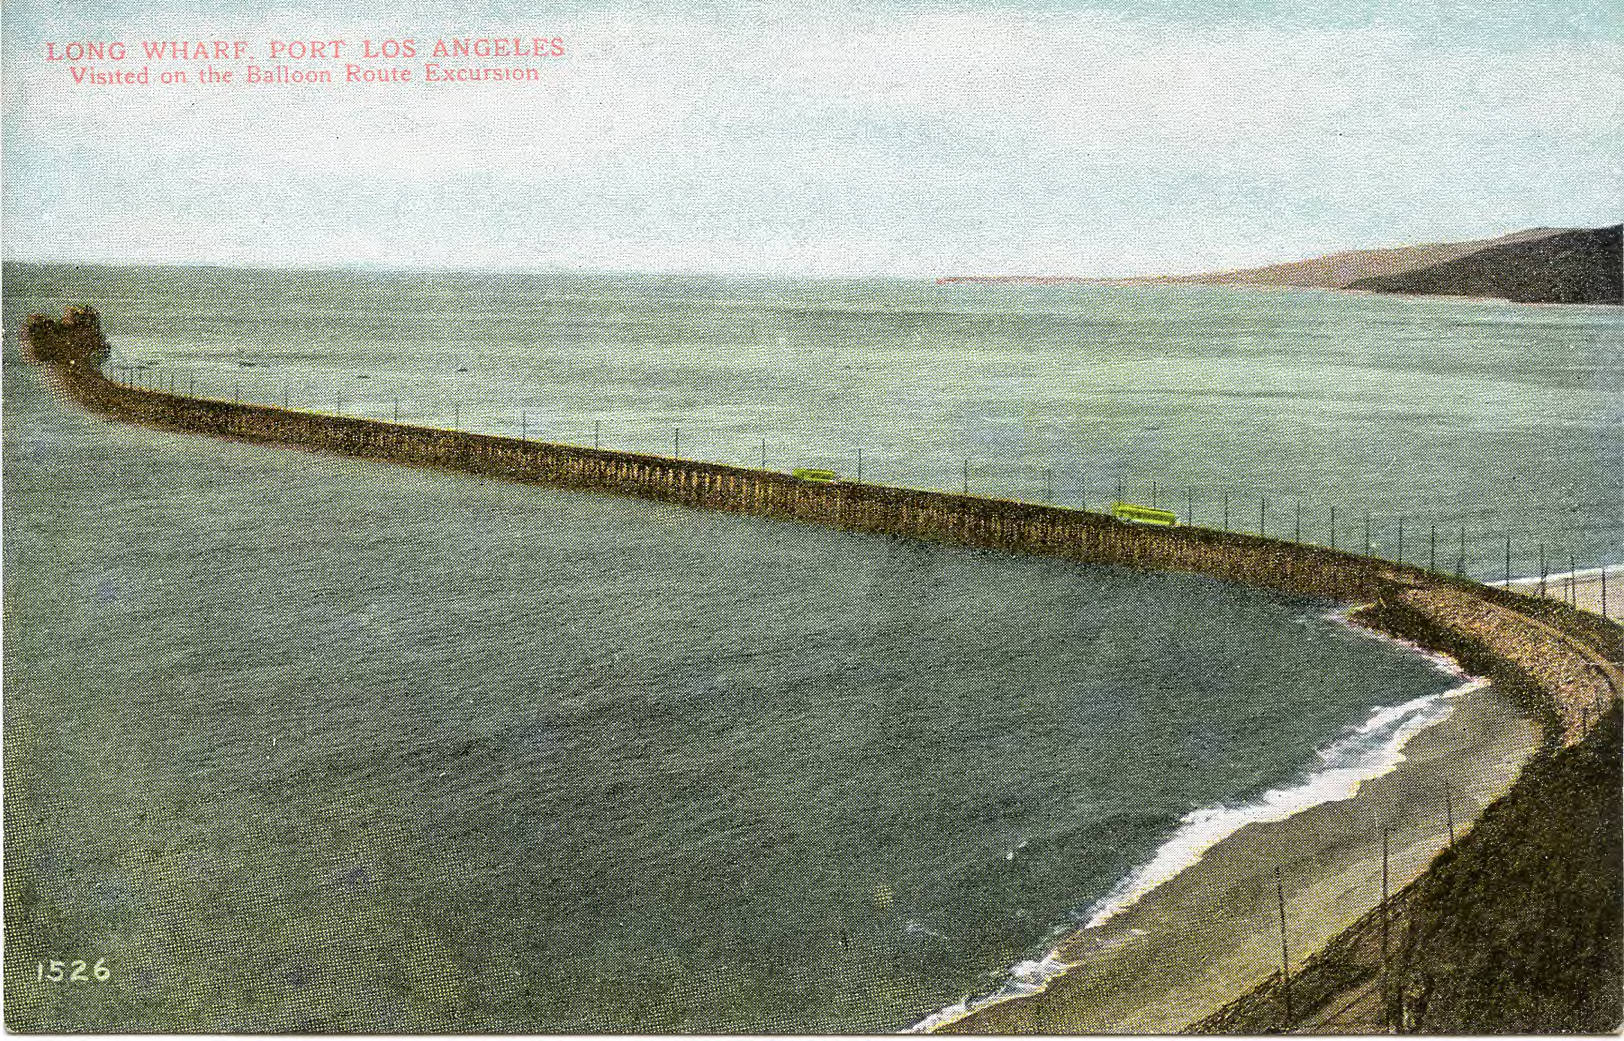 Postcard of Santa Monica's Long Wharf